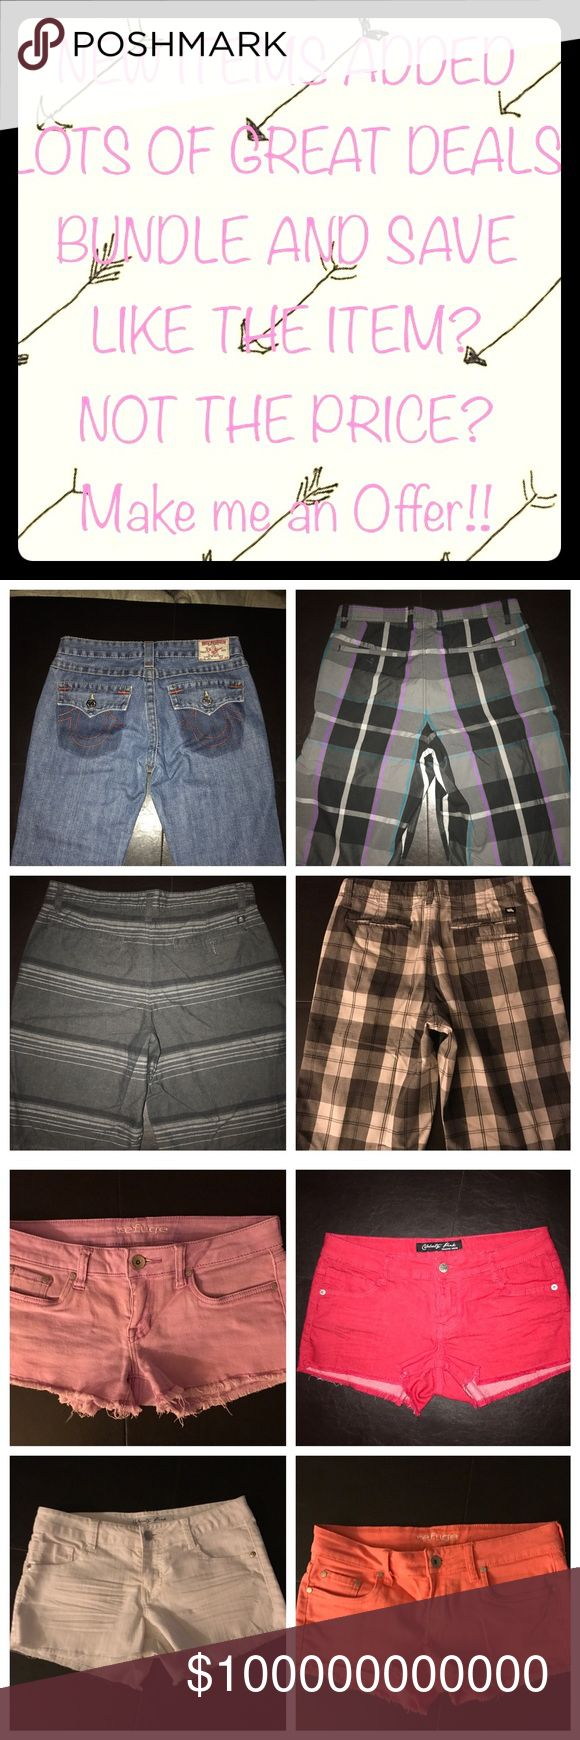 New Shorts added! Men's and Women's Tony Hawk and Vans for the Guys. Refuge and Celebrity Pink for the Ladies.  Lots of sales and offers always considered! Vans Other